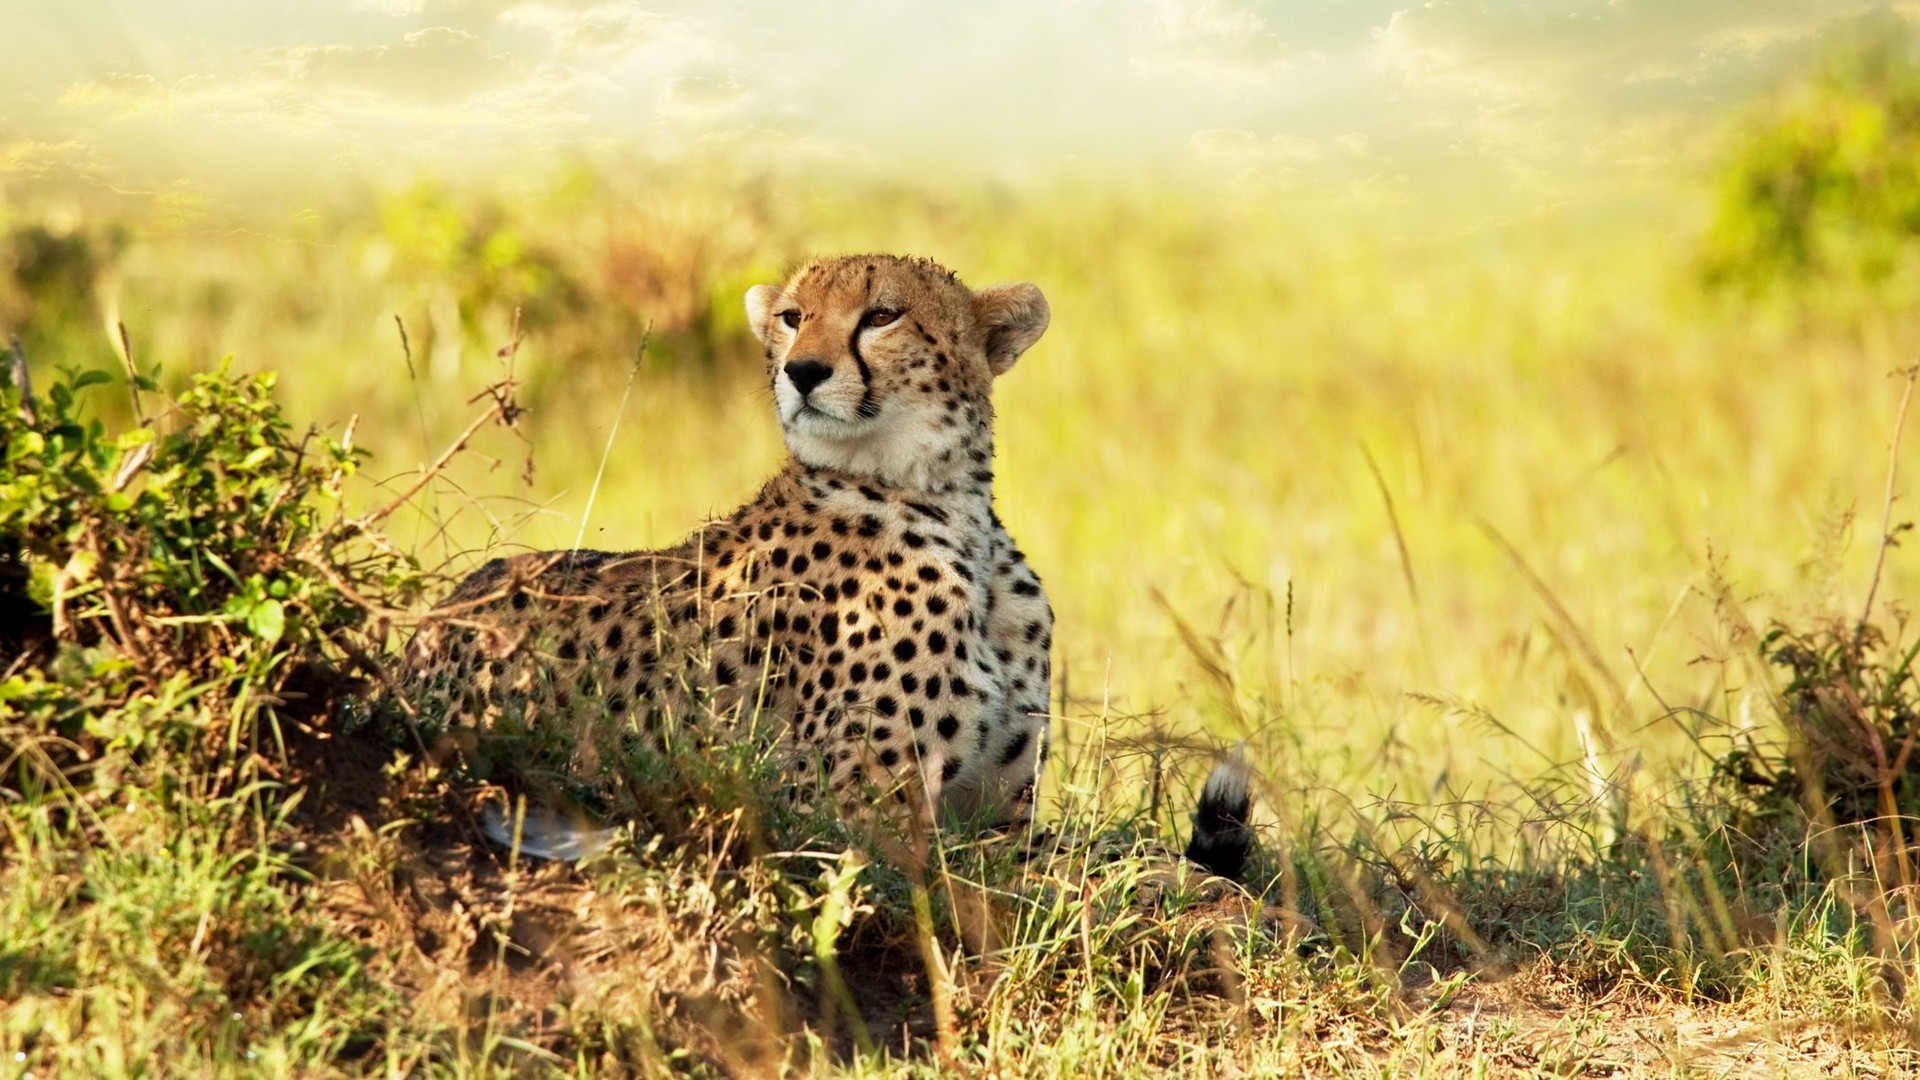 3d Wallpaper South Africa Cheetah Savanna Africa Wallpapers Hd Wallpapers Id 9855